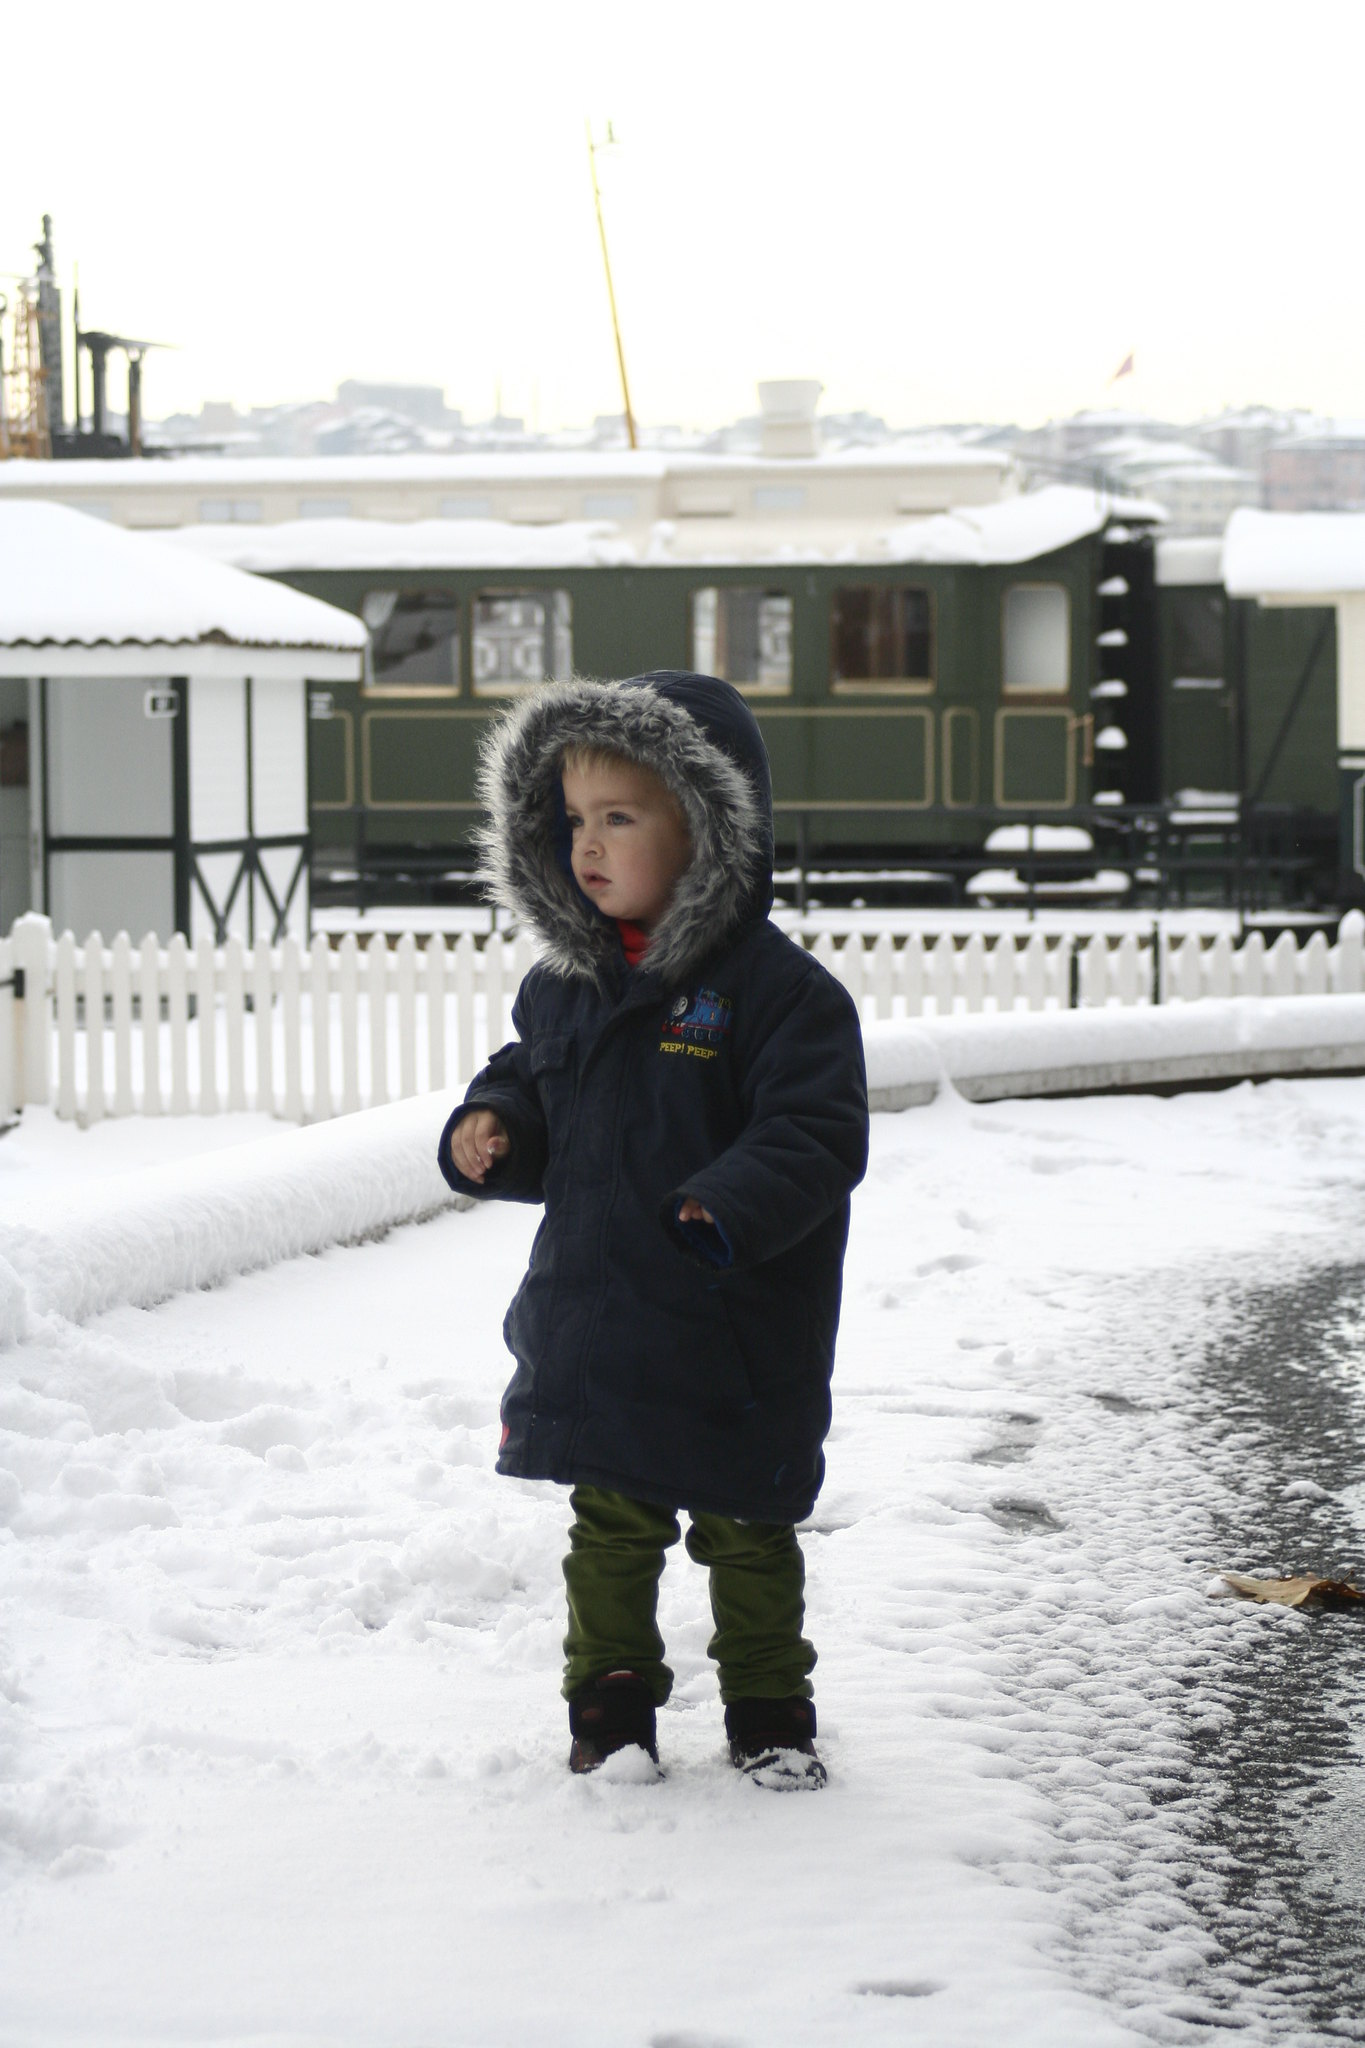 Anton in the snow at Koç 'Car' Museum.